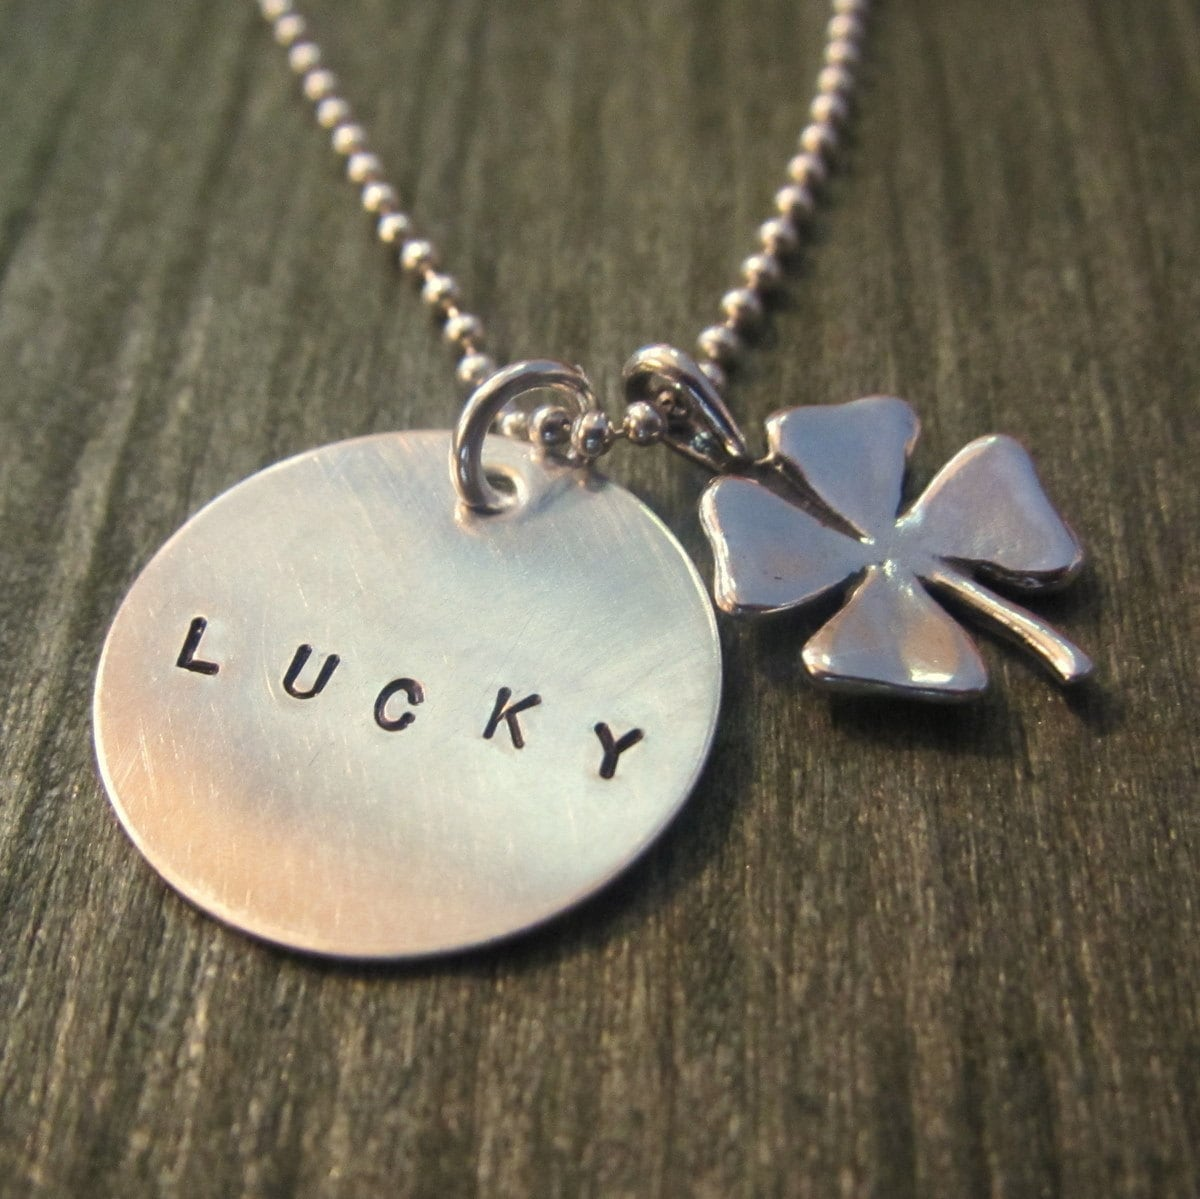 What is good about lucky charms?